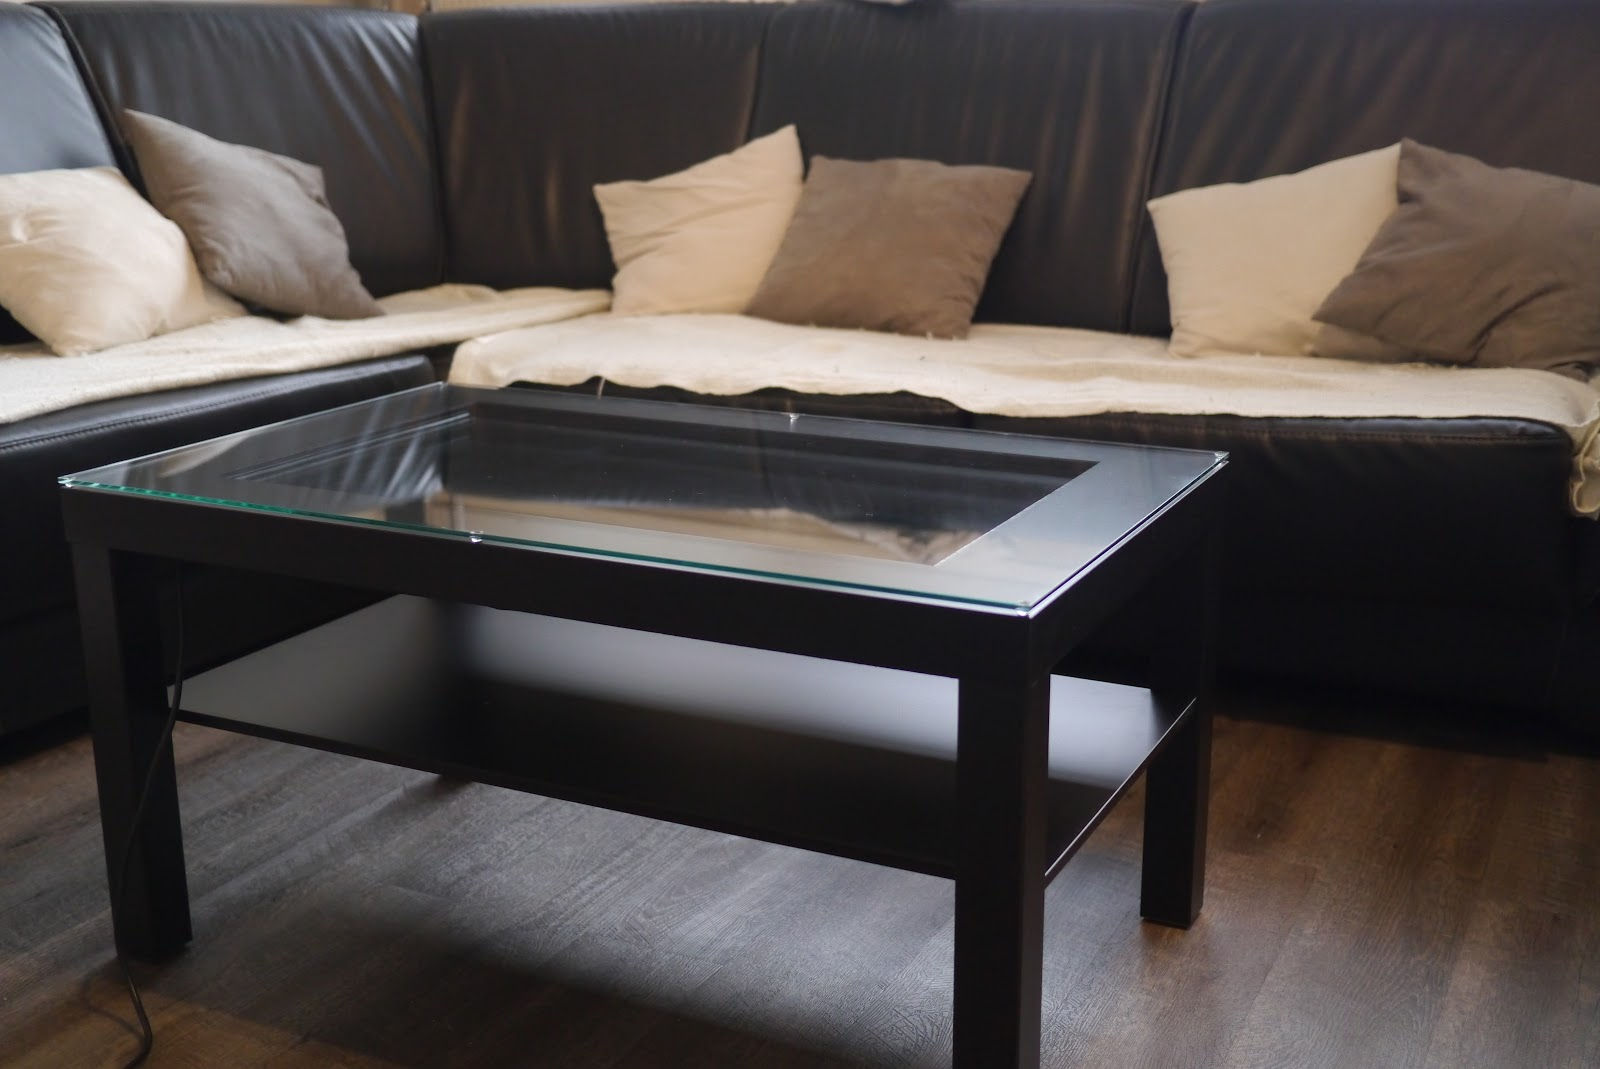 Le diy de droofy table basse tactile v2 pqlab for Plateau en verre ikea